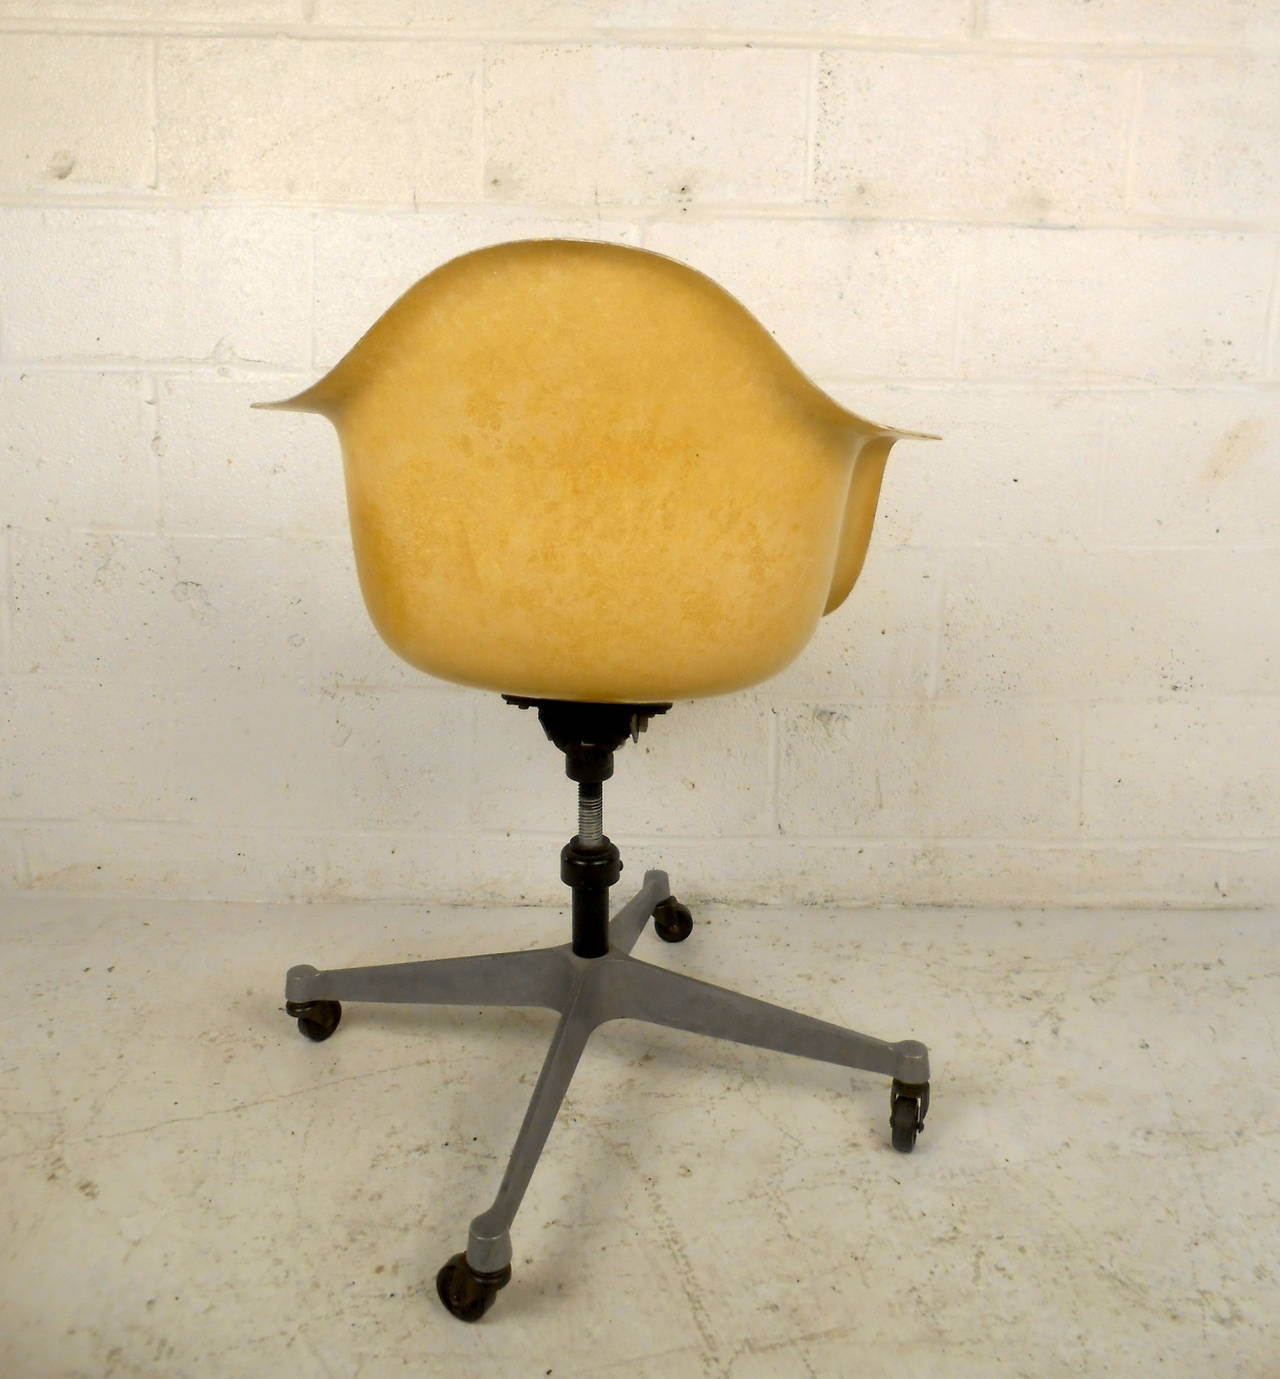 fiberglass shell chairs. american mid-century modern fiberglass shell chair with wheels by herman miller for sale chairs c